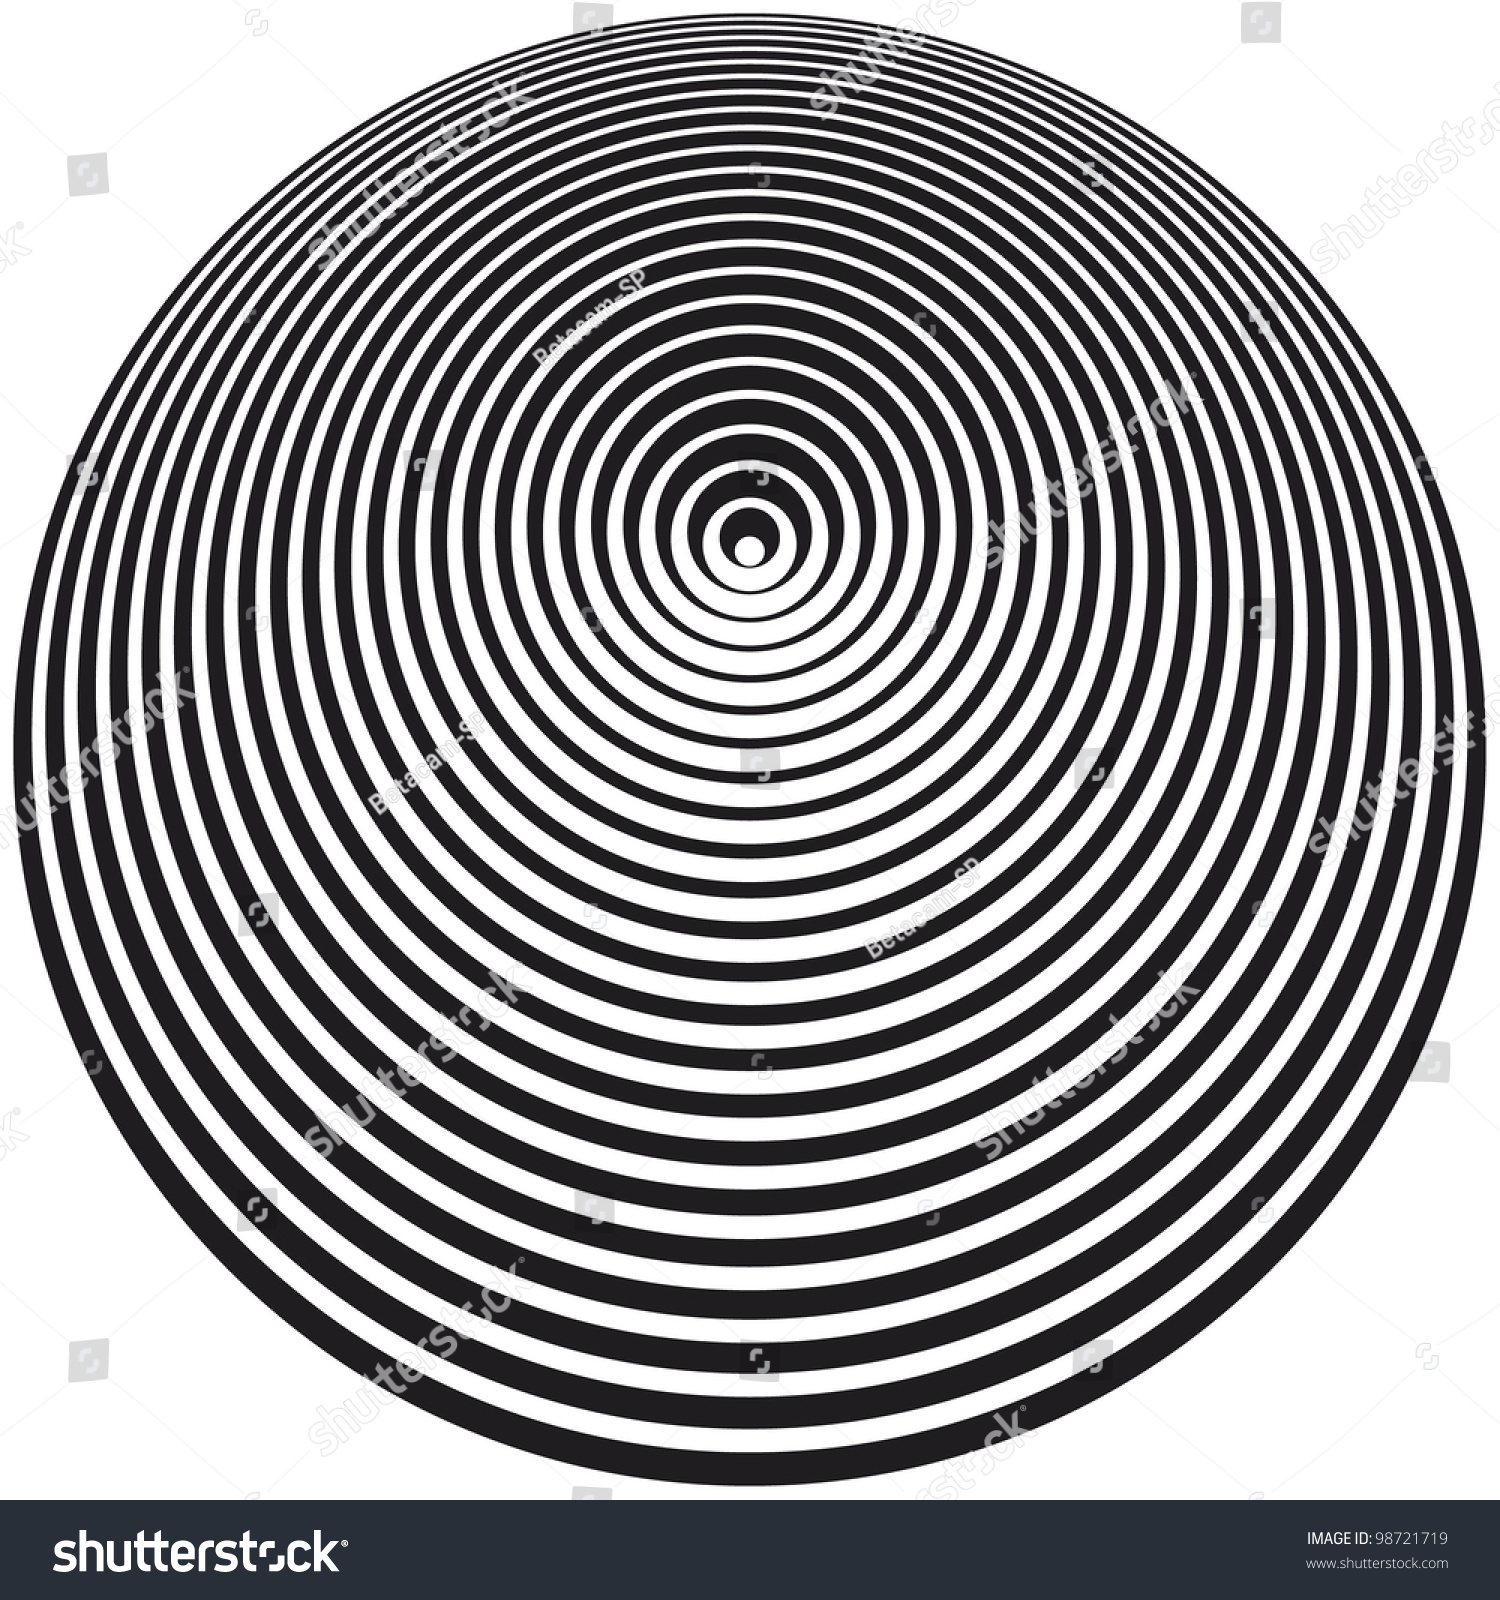 Op Art, Also Known As Optical Art, Is A Style Of Visual